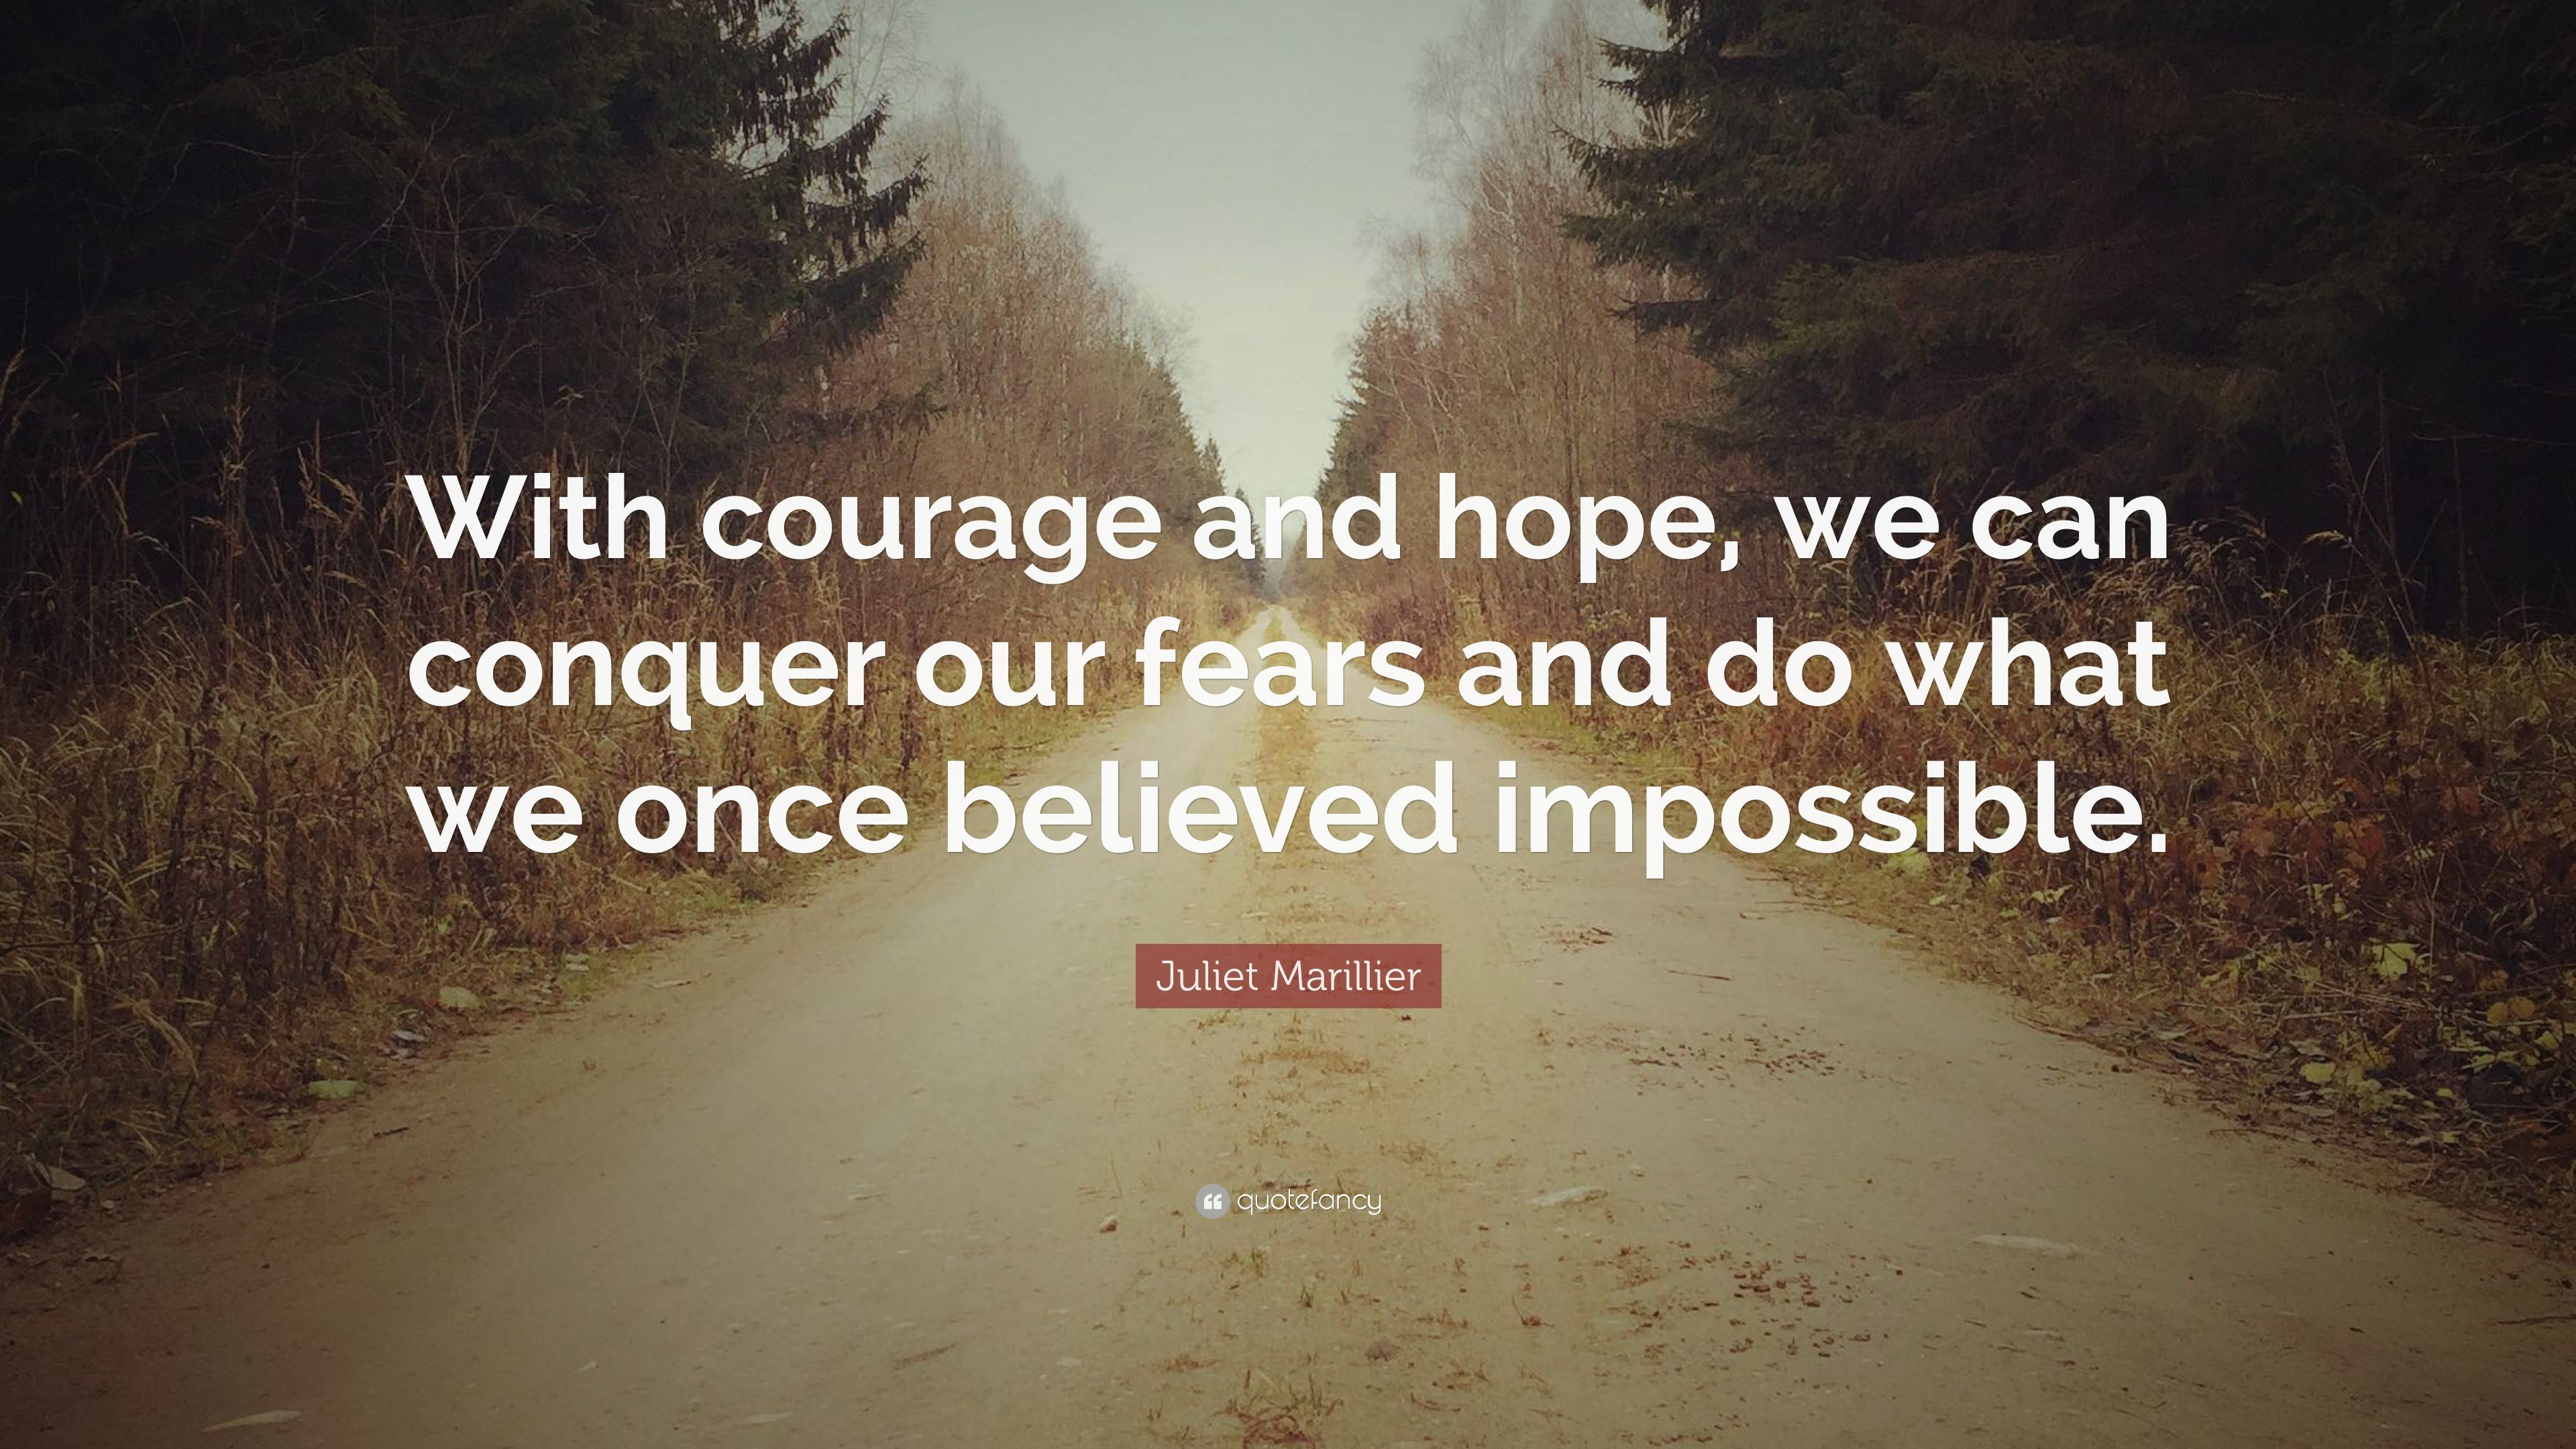 Juliet Marillier Quote With Courage And Hope We Can Conquer Our